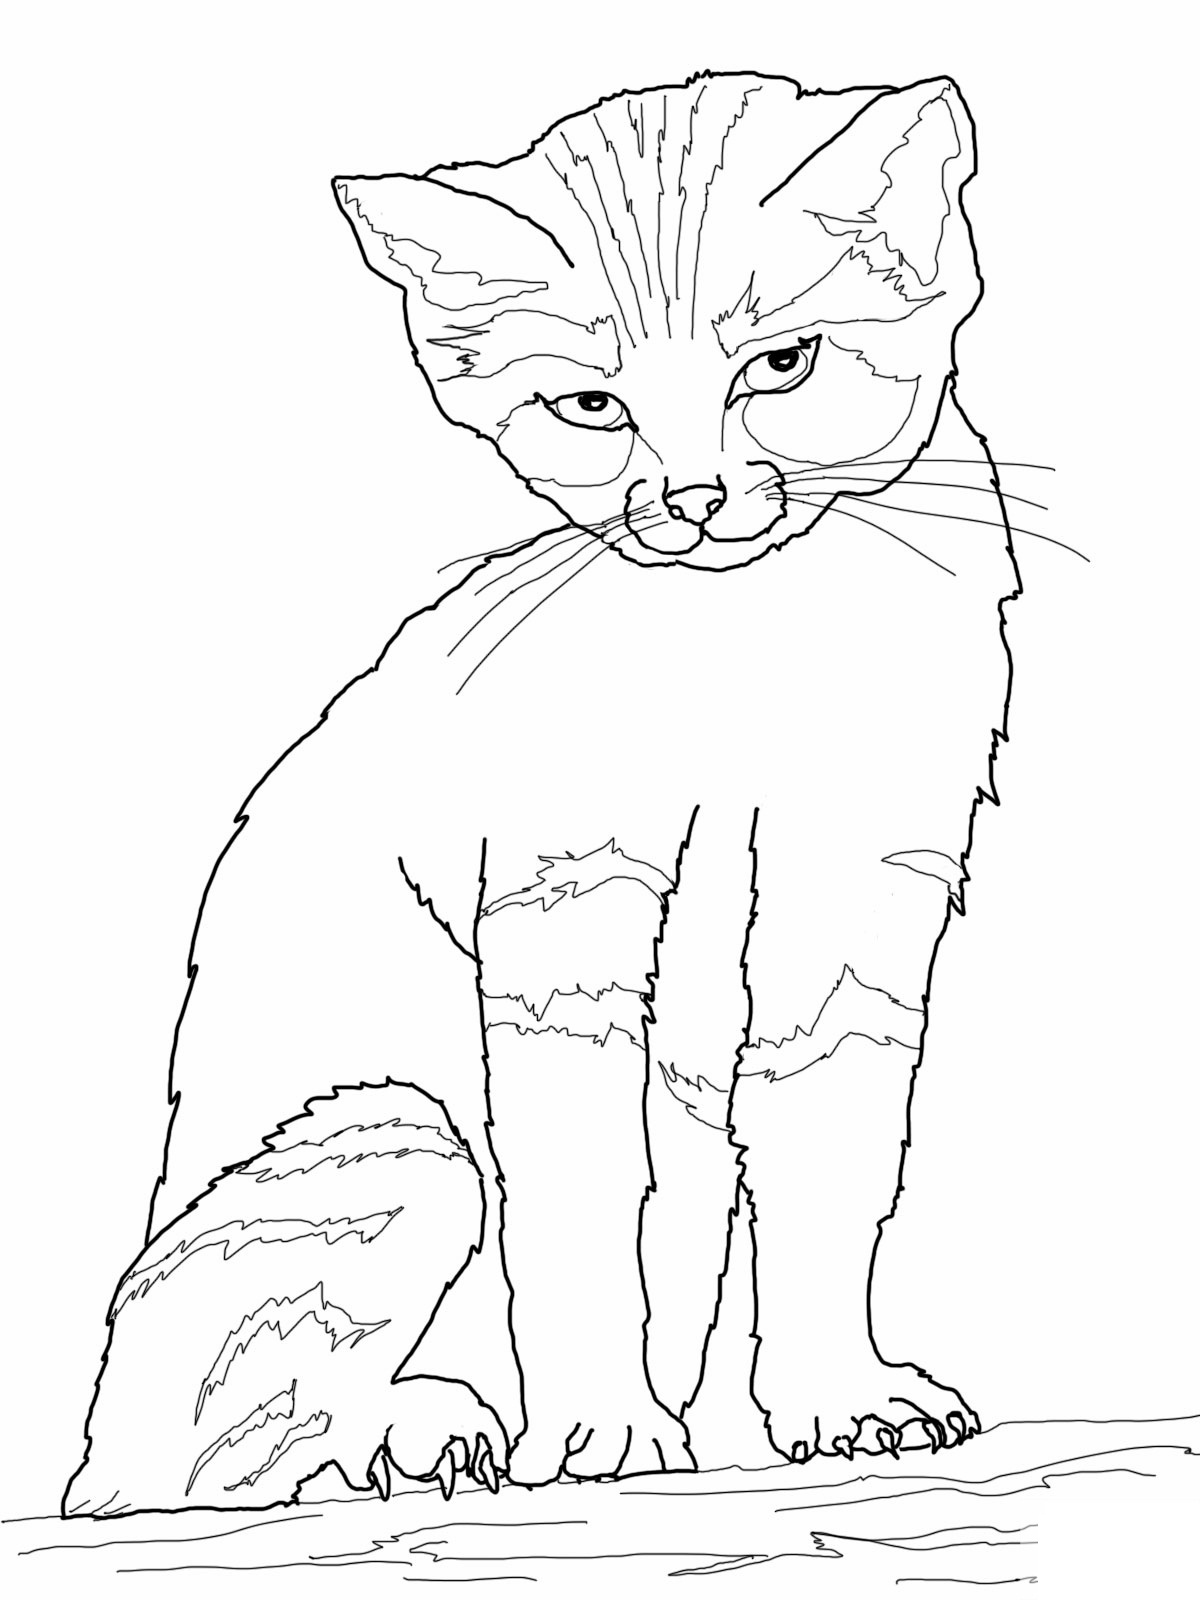 kitten printout coloring pages - photo#40